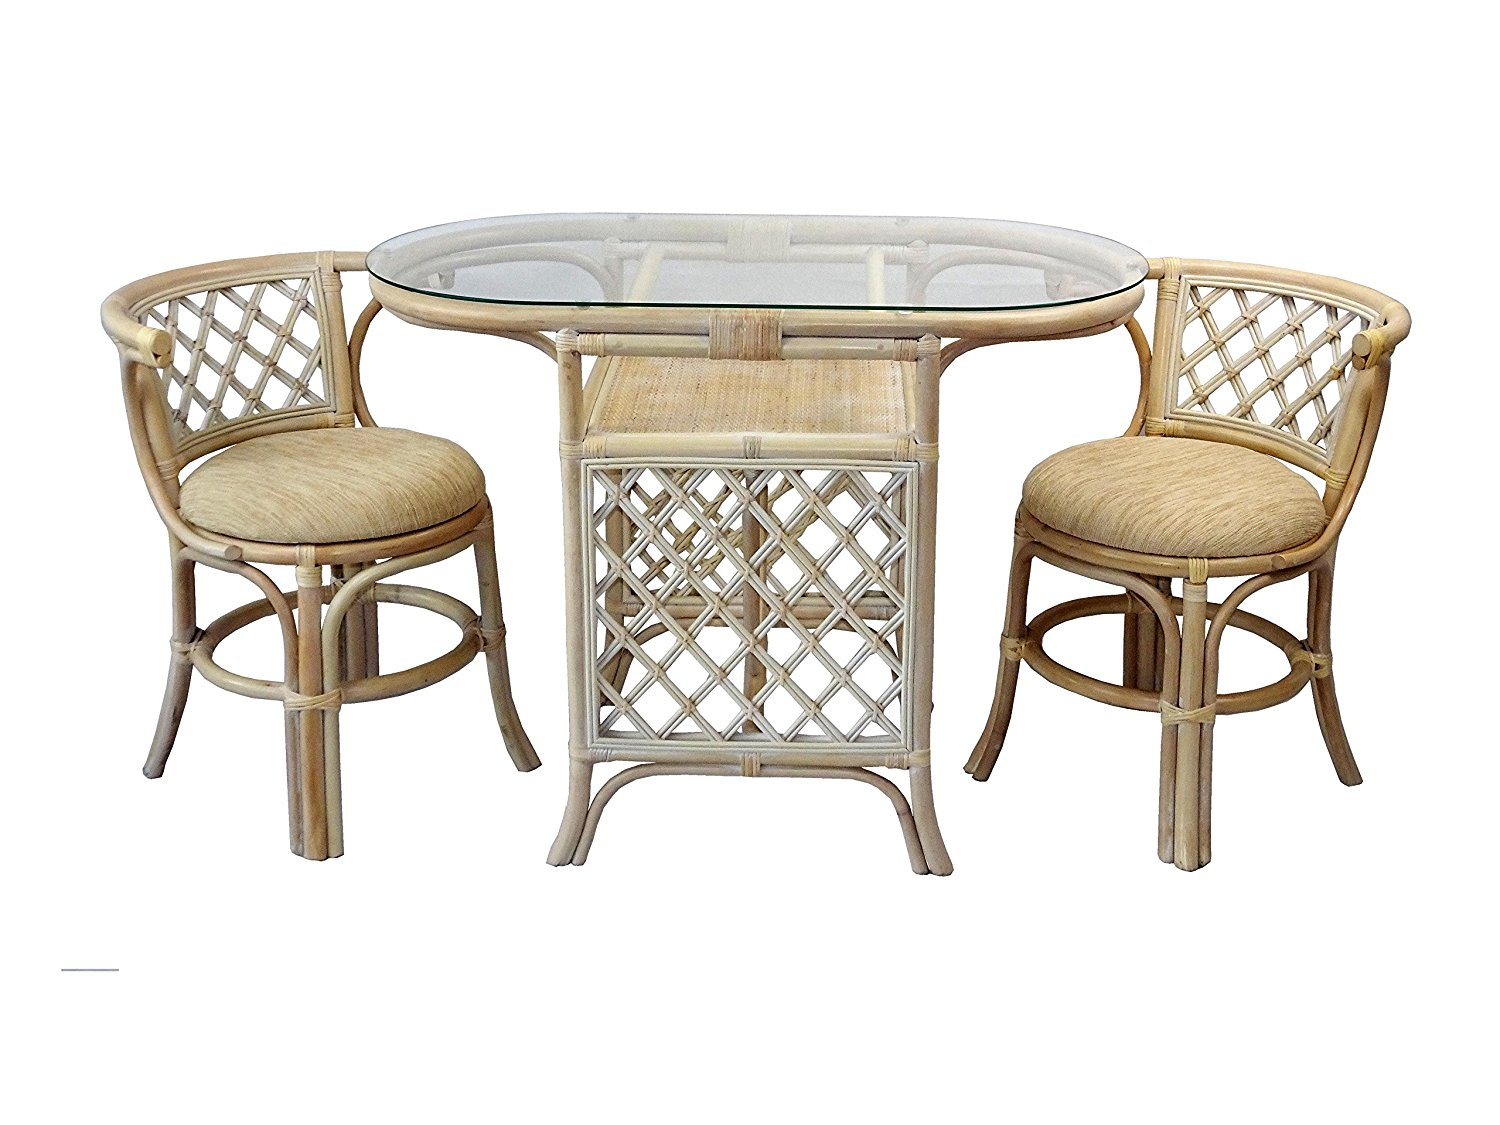 Set Of 3 Wooden Tables: Buy Borneo 3-pc. Dining Set (table With Glass Top) In USA